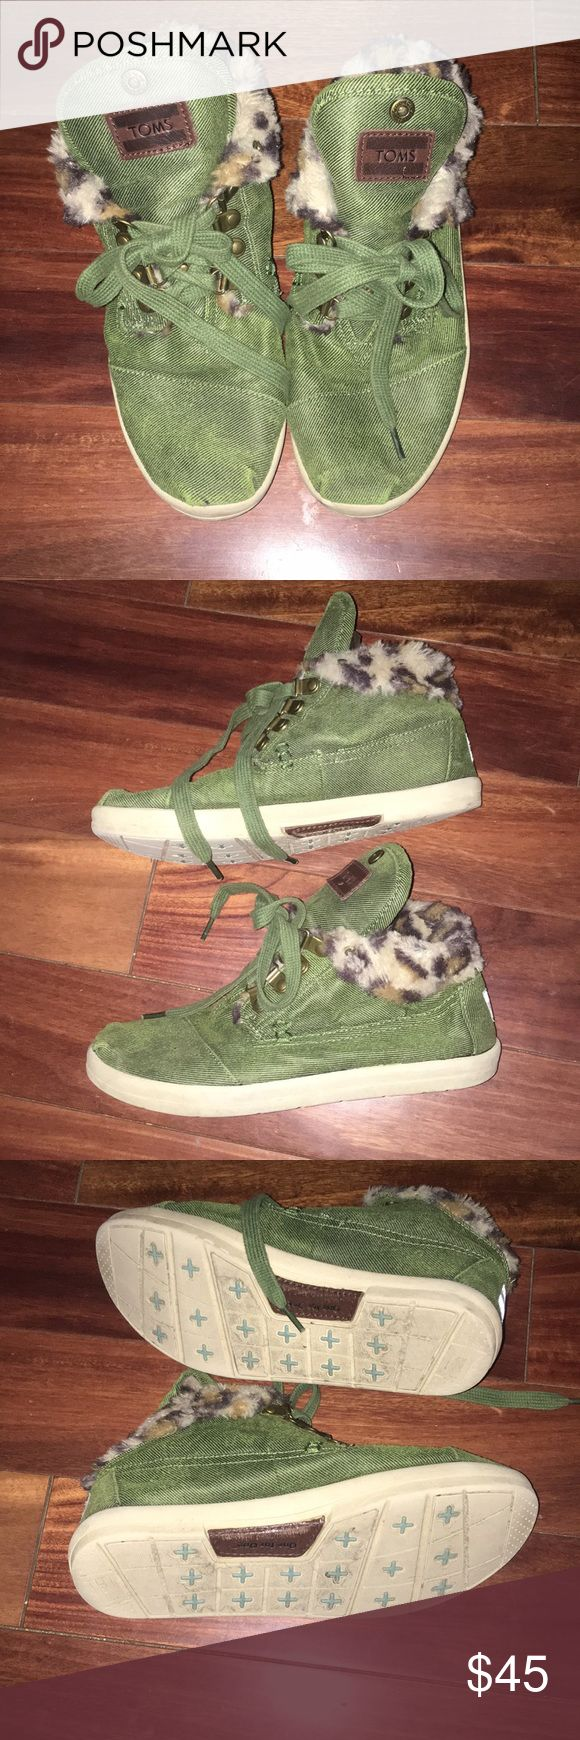 Super cute green and leopard Toms In good condition green and leopard toms size 7 Toms Shoes Sneakers